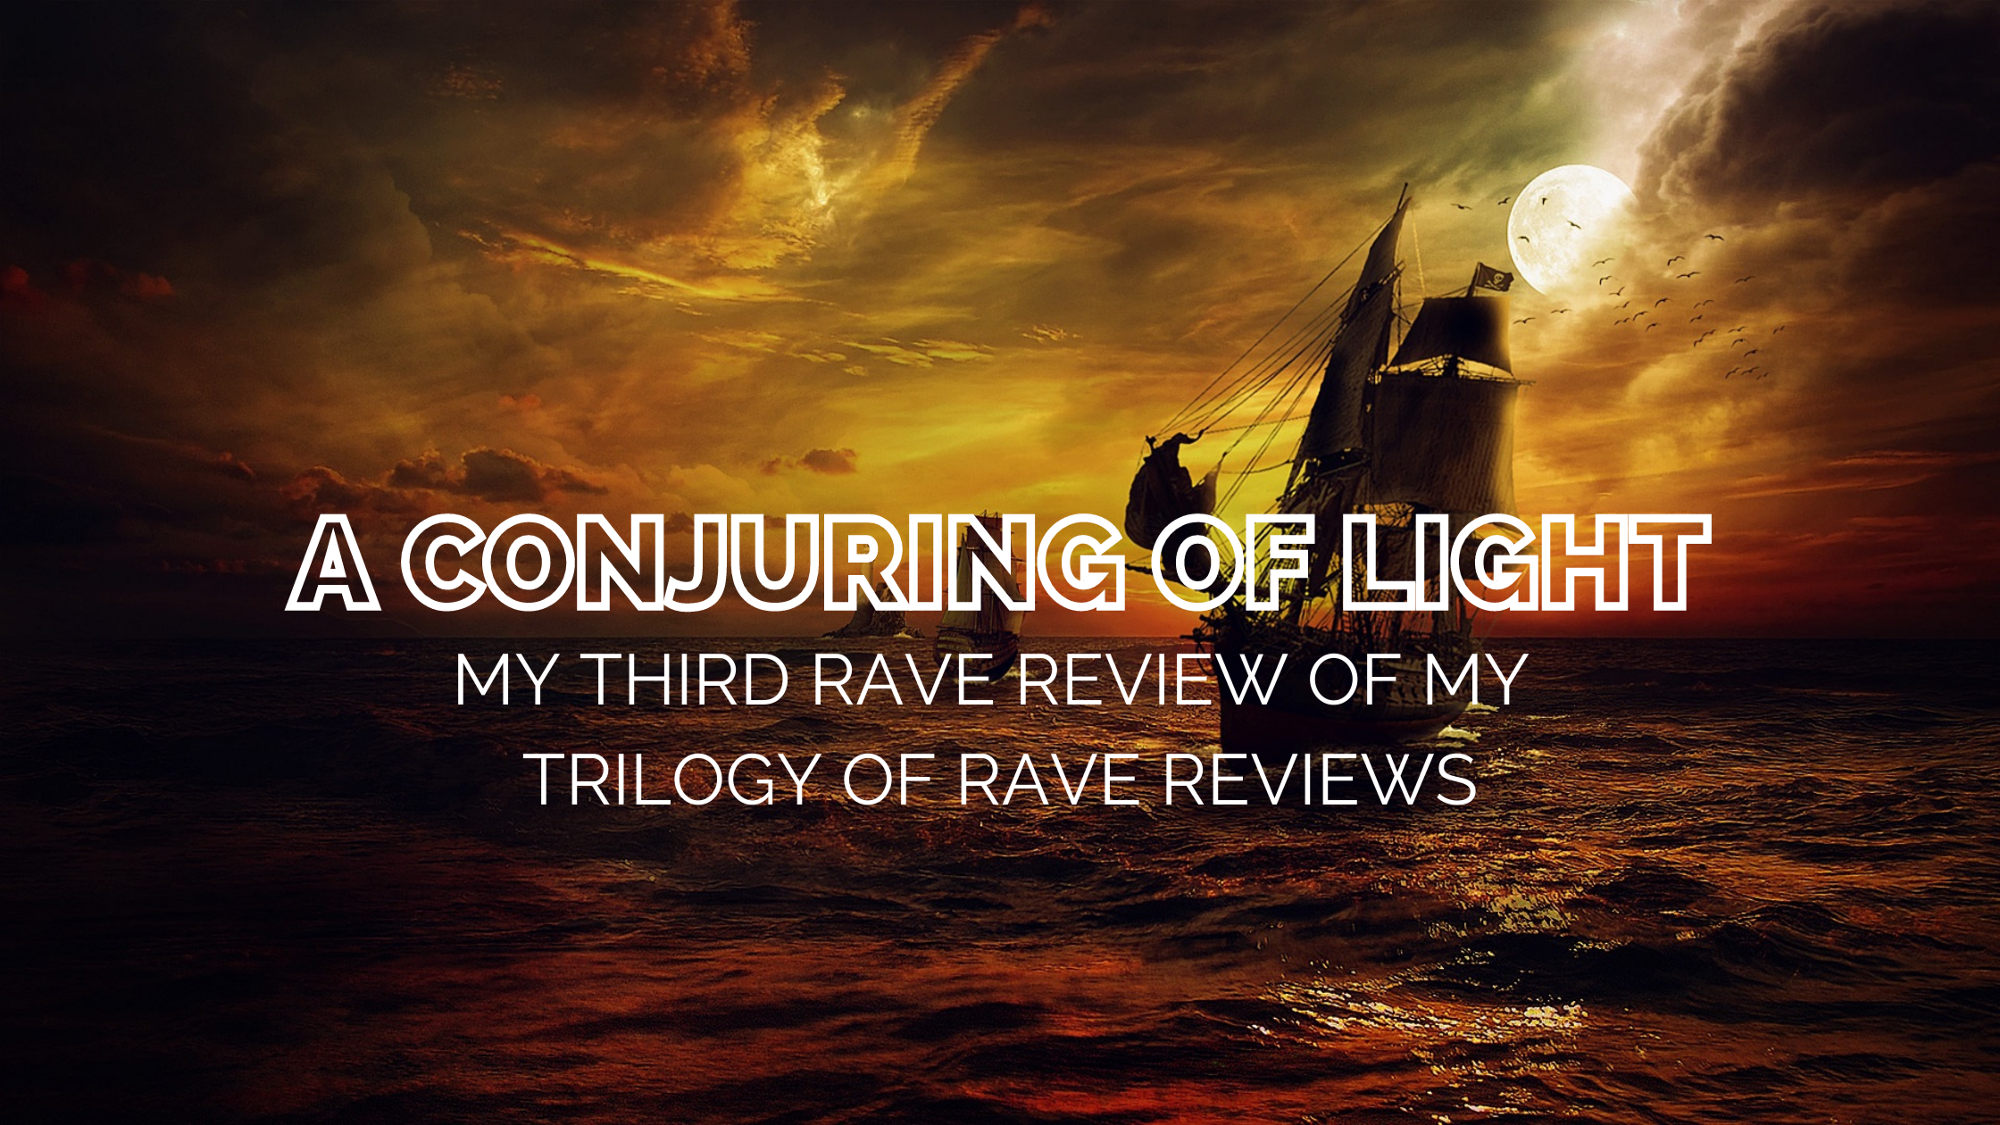 My third rave review of my trilogy of rave reviews